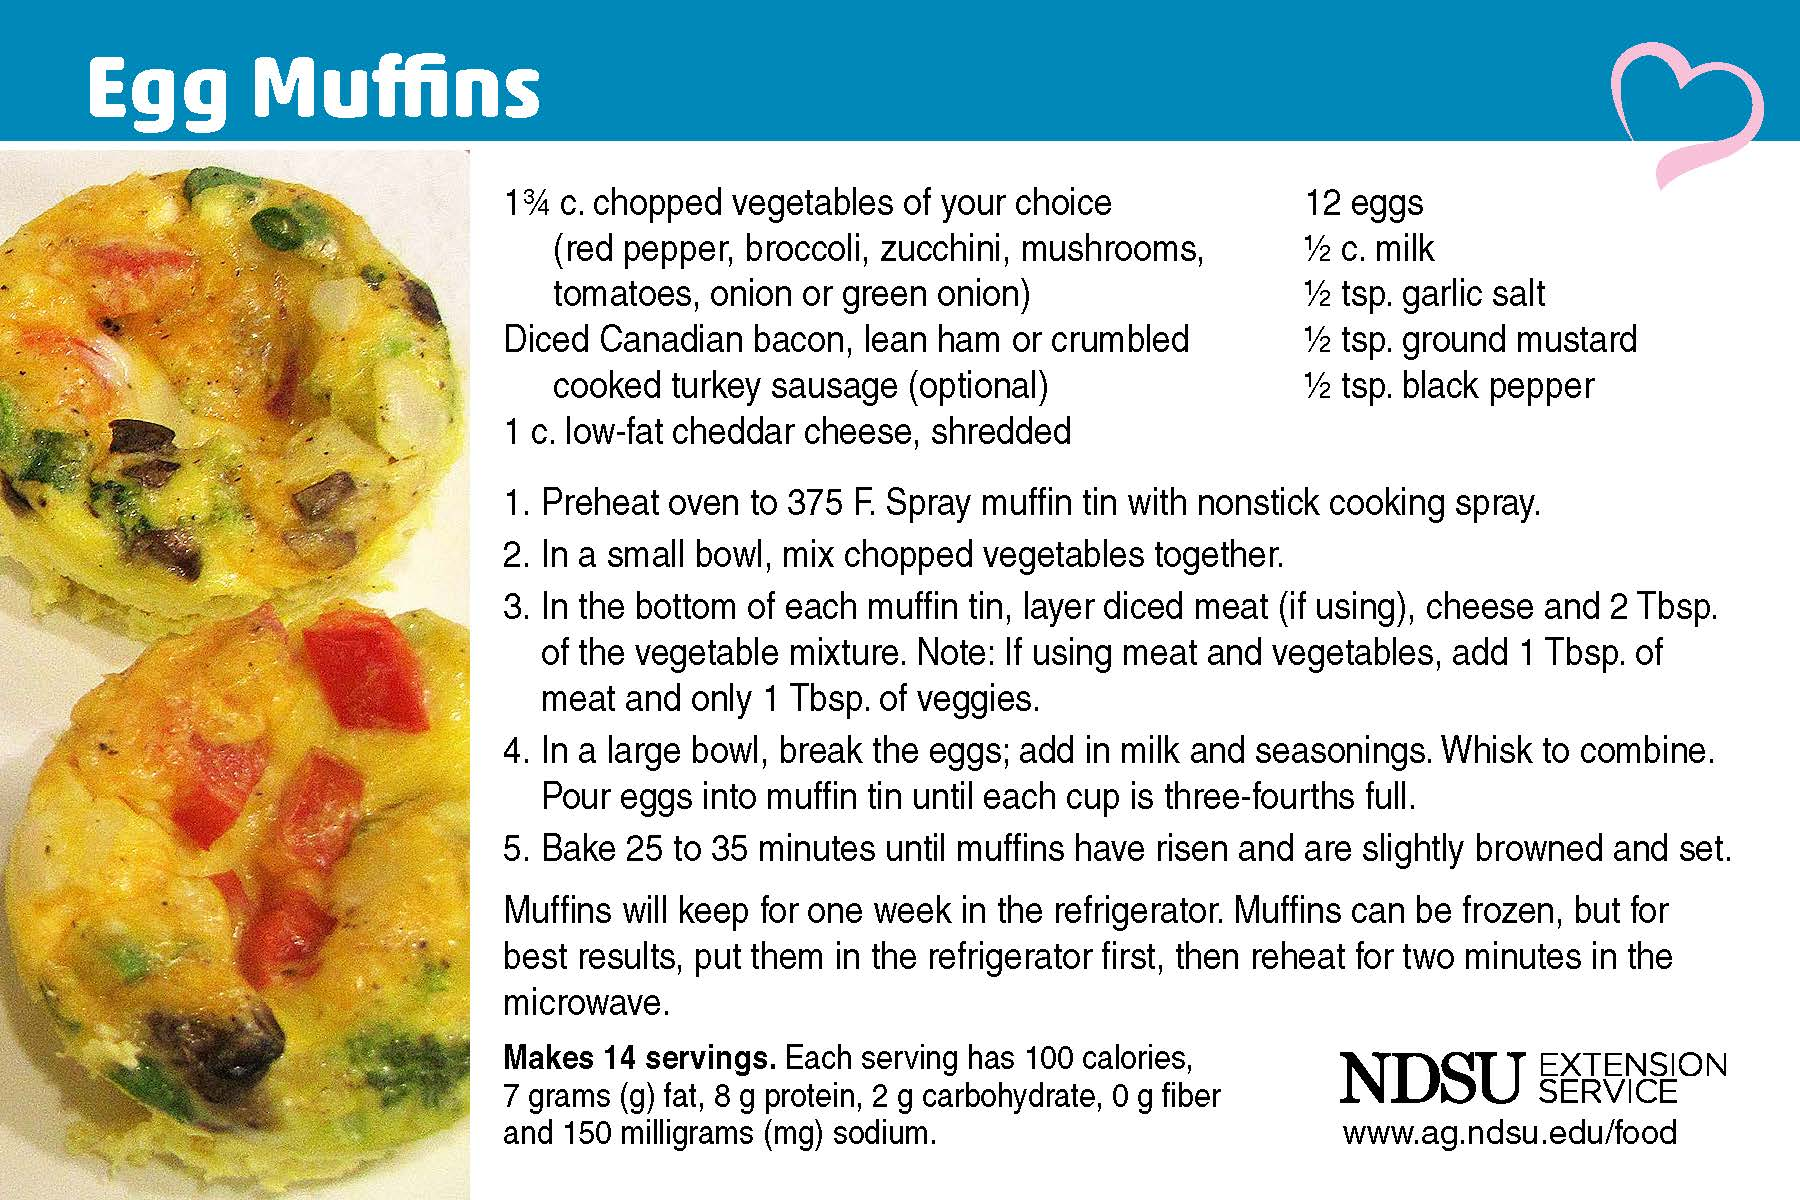 recipe card for Egg muffins.